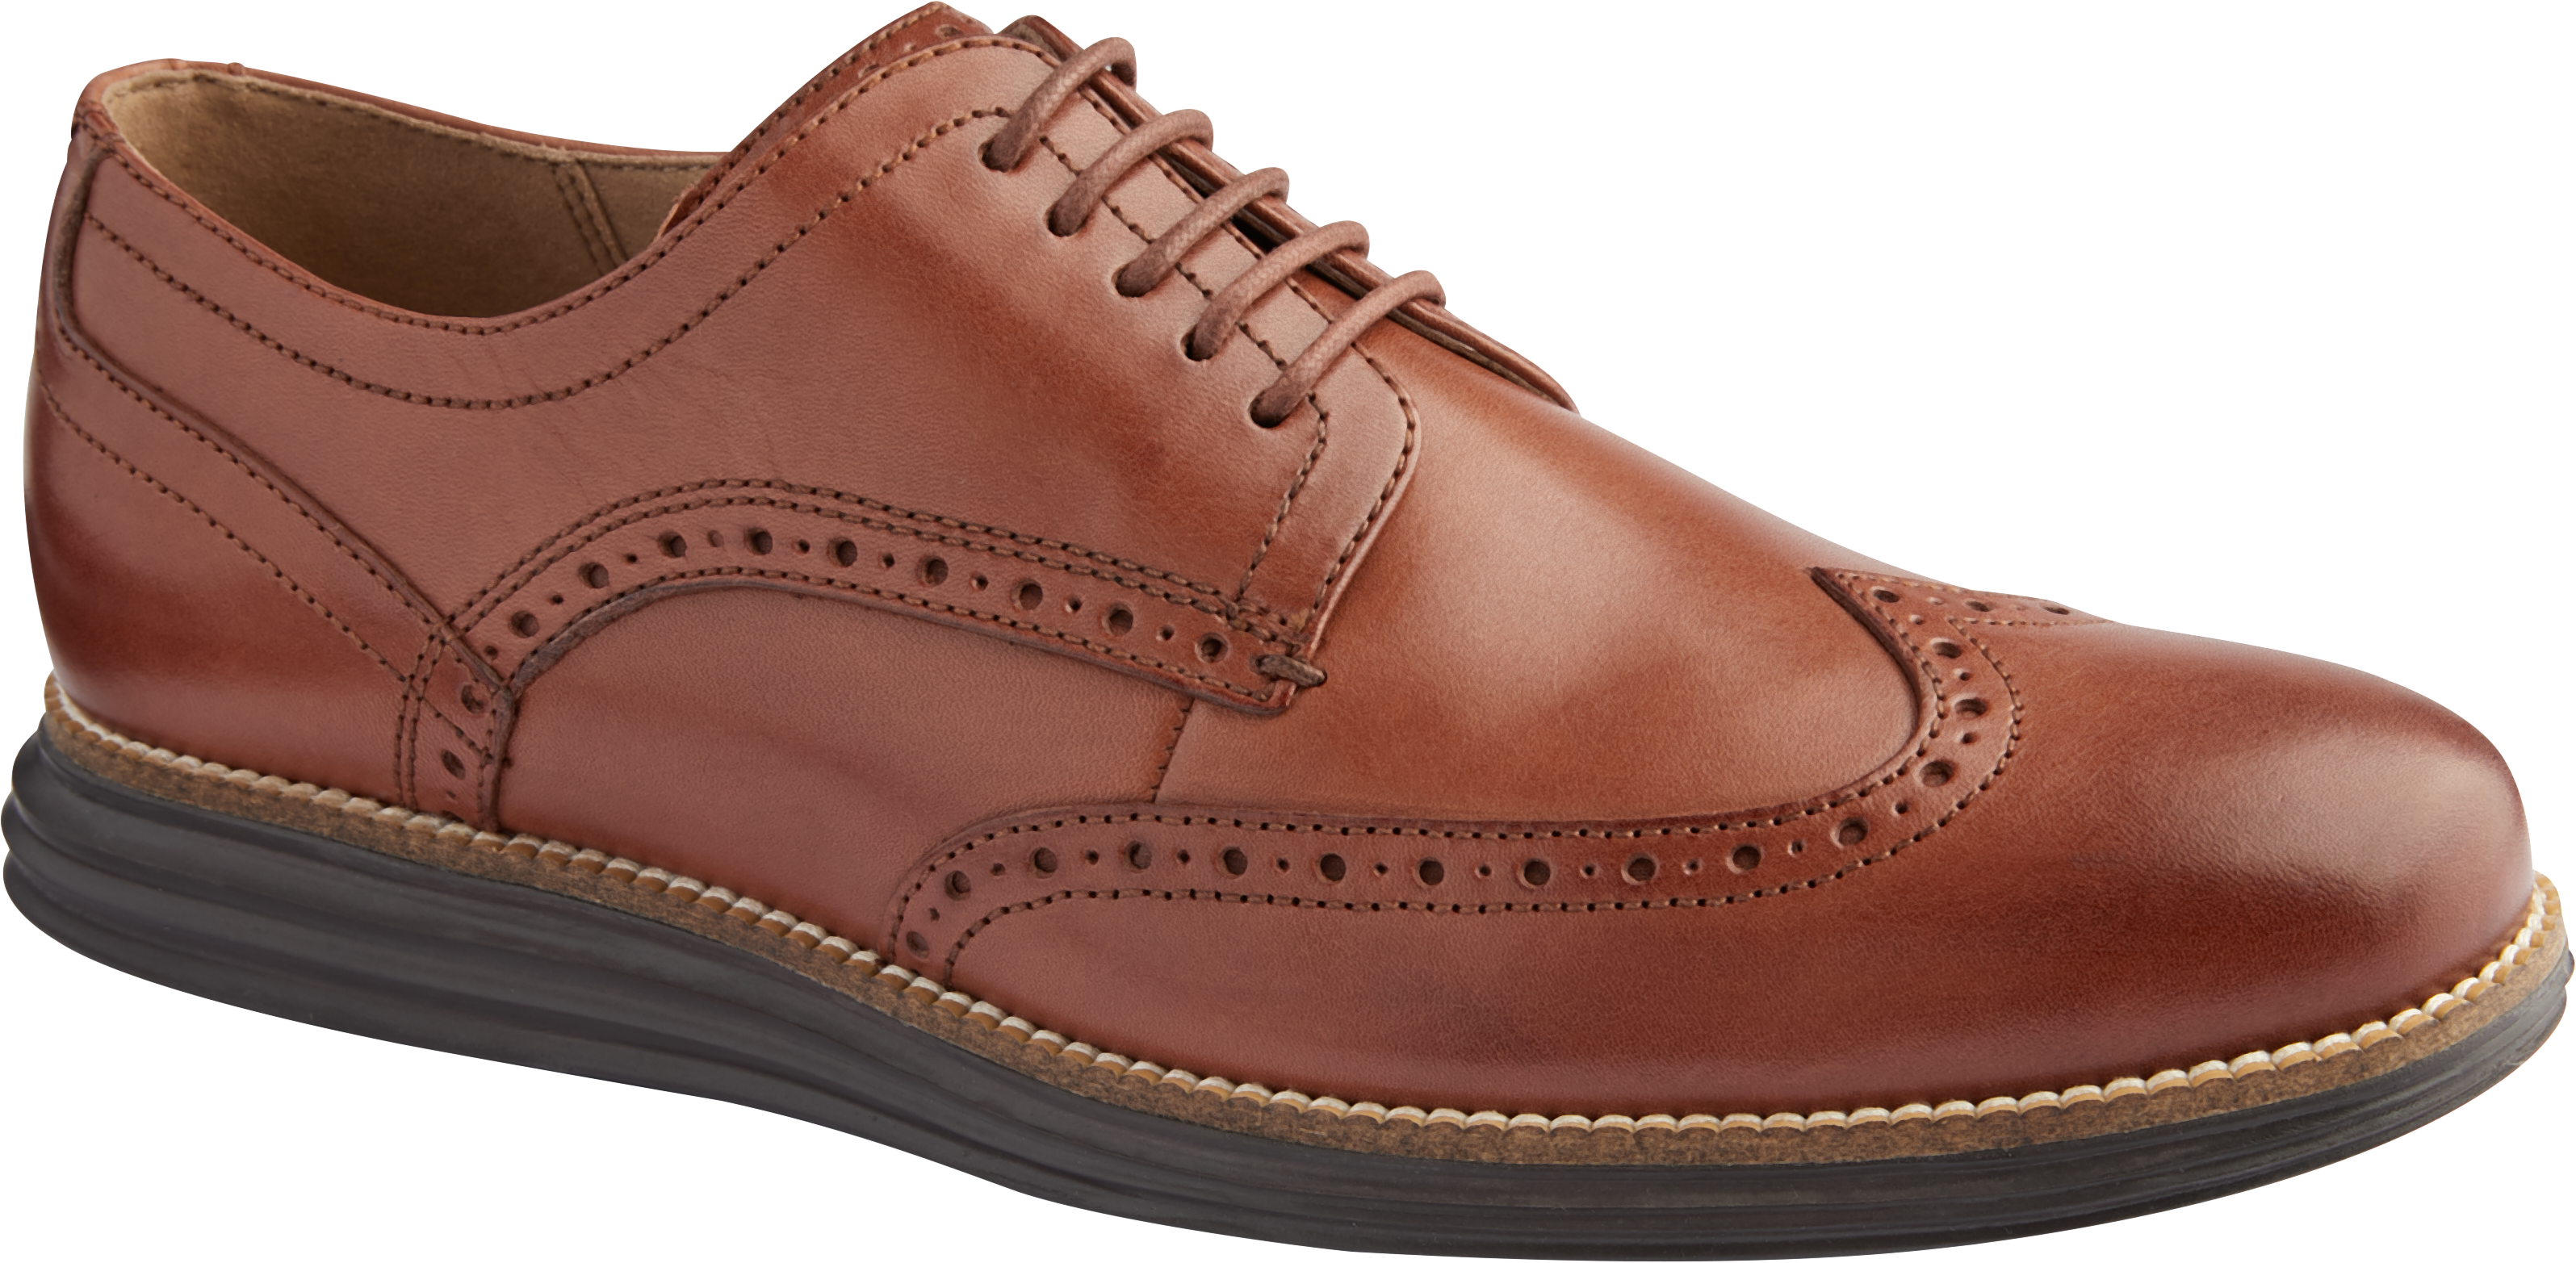 1ce5e1175 Cole Haan Original Grand Shortwing Wingtip Oxfords - Cole Haan